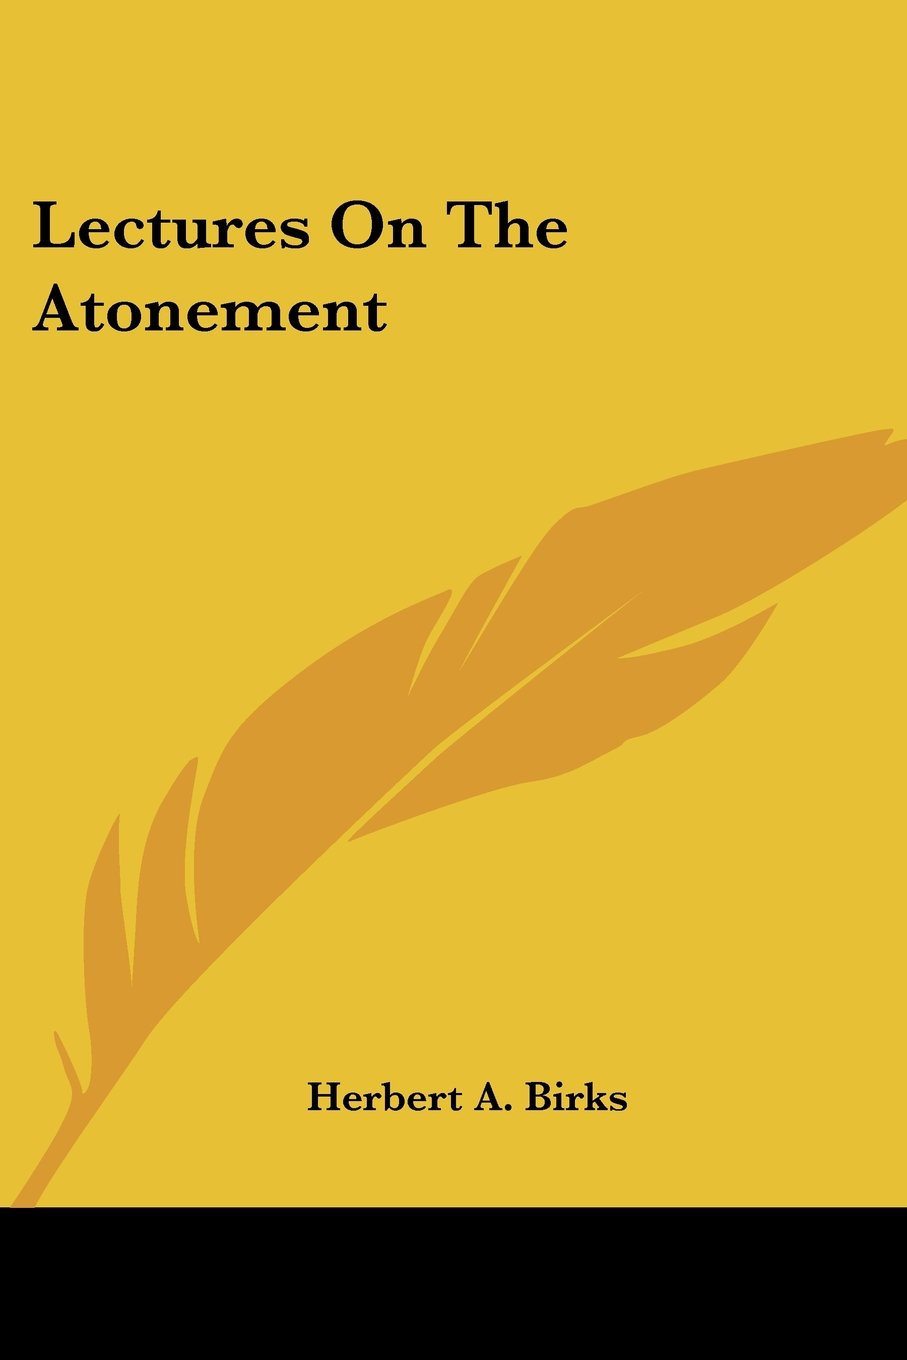 Download Lectures On The Atonement pdf